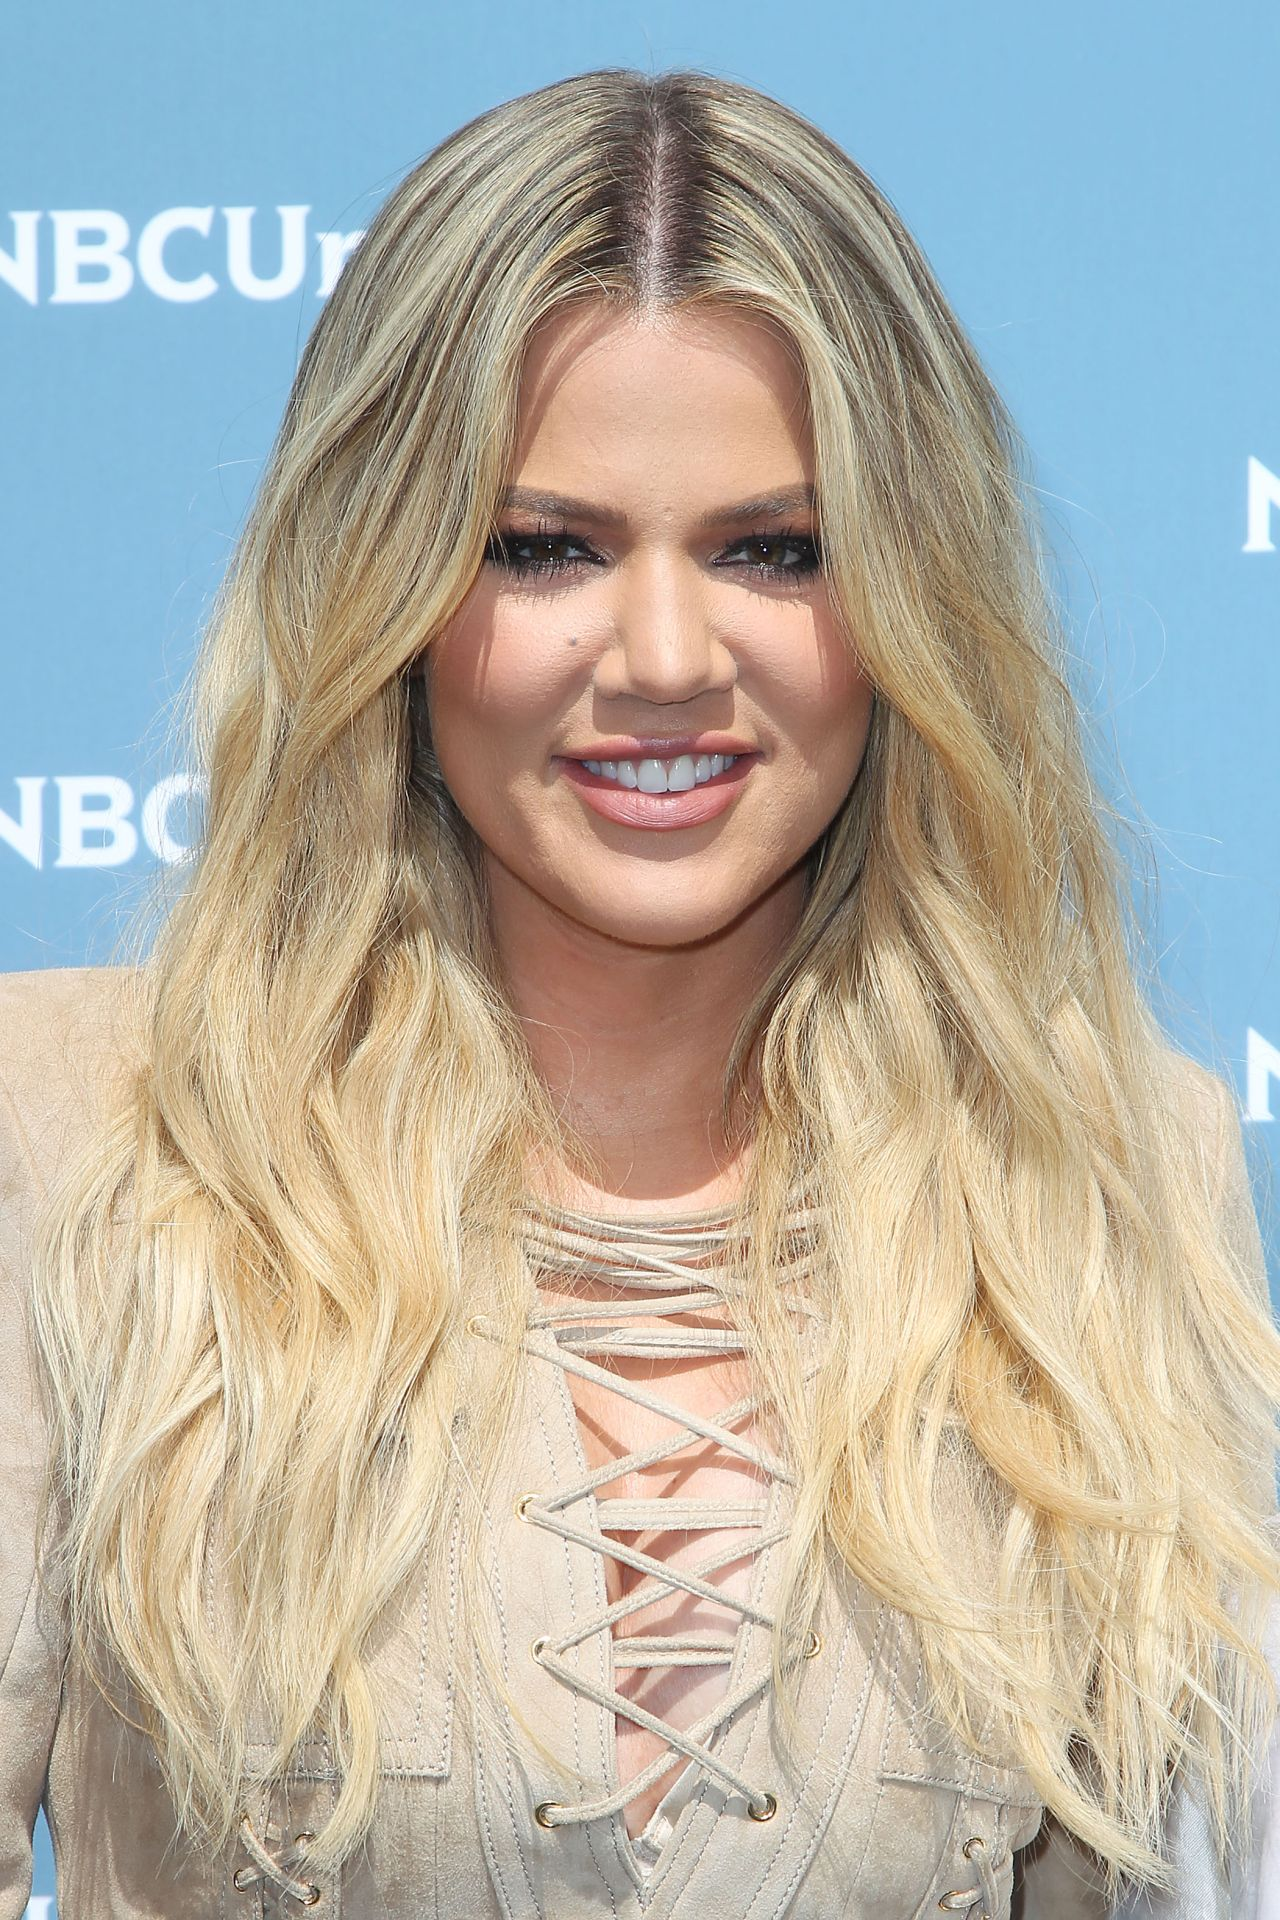 khloe kardashian - photo #19